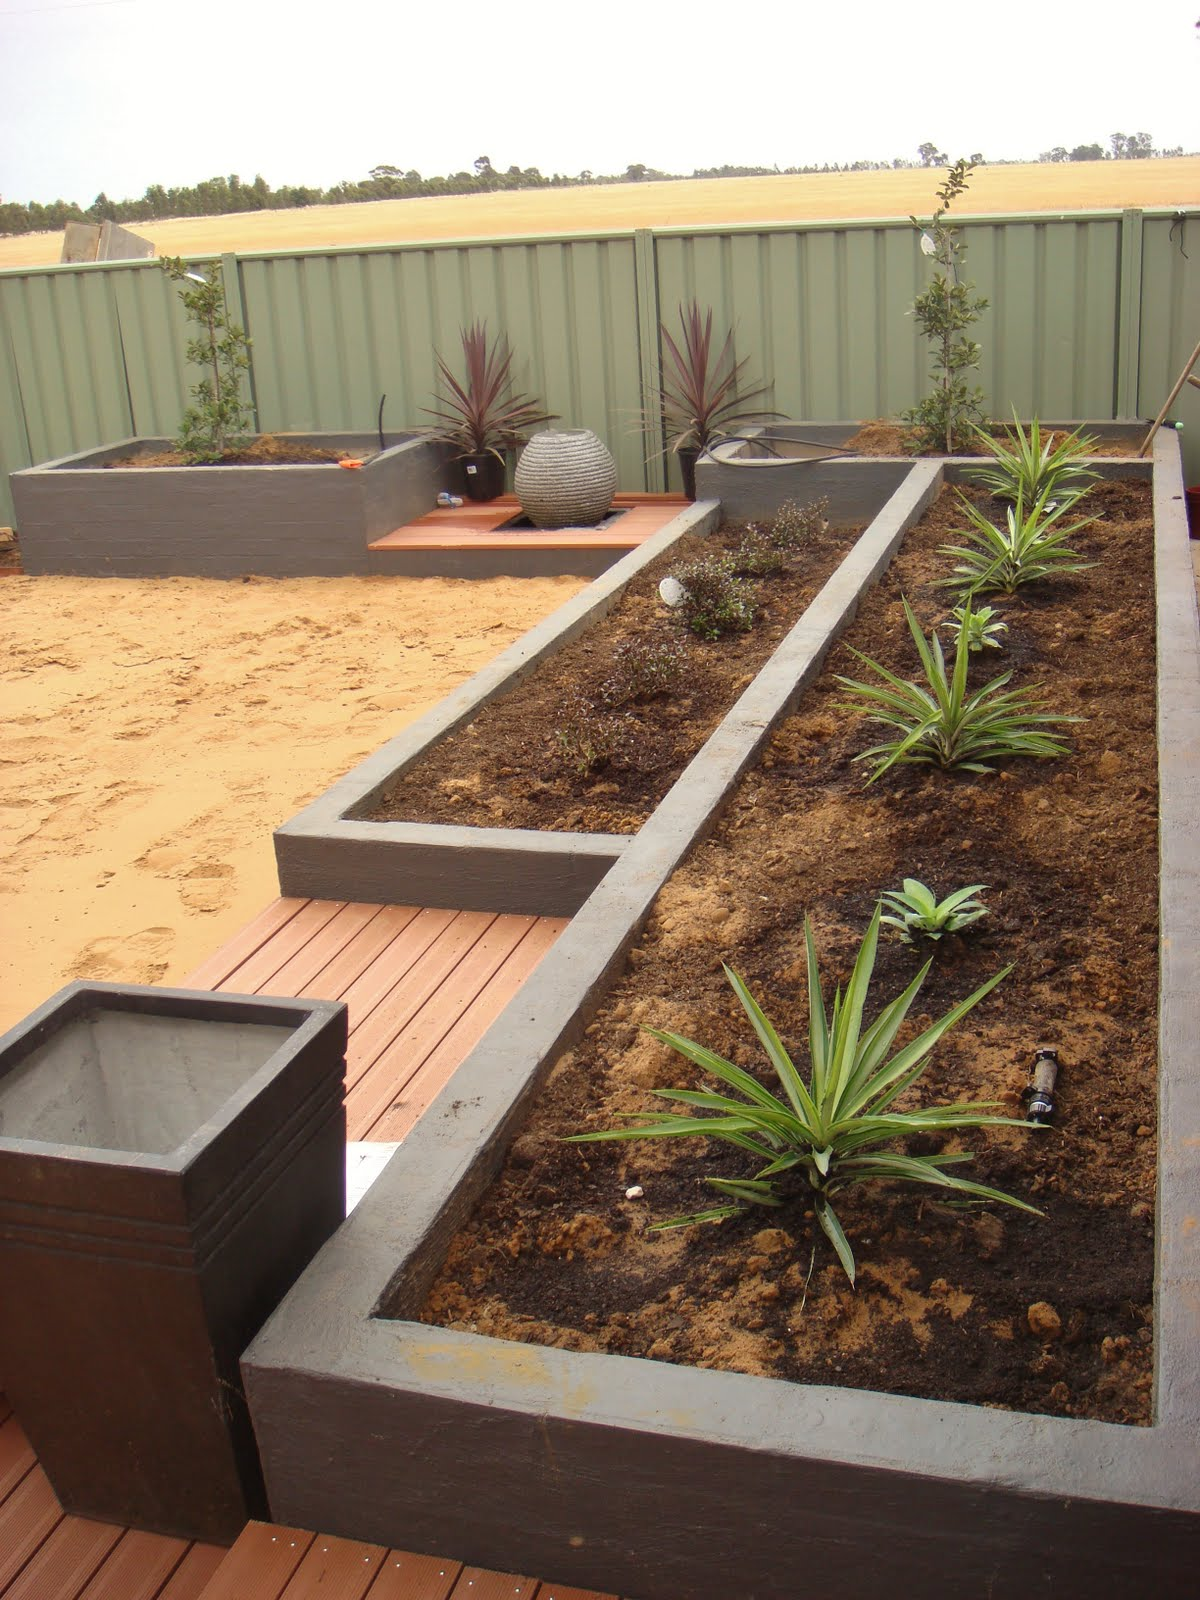 Eden design a simple backyard garden echuca victoria for Simple water features for backyard